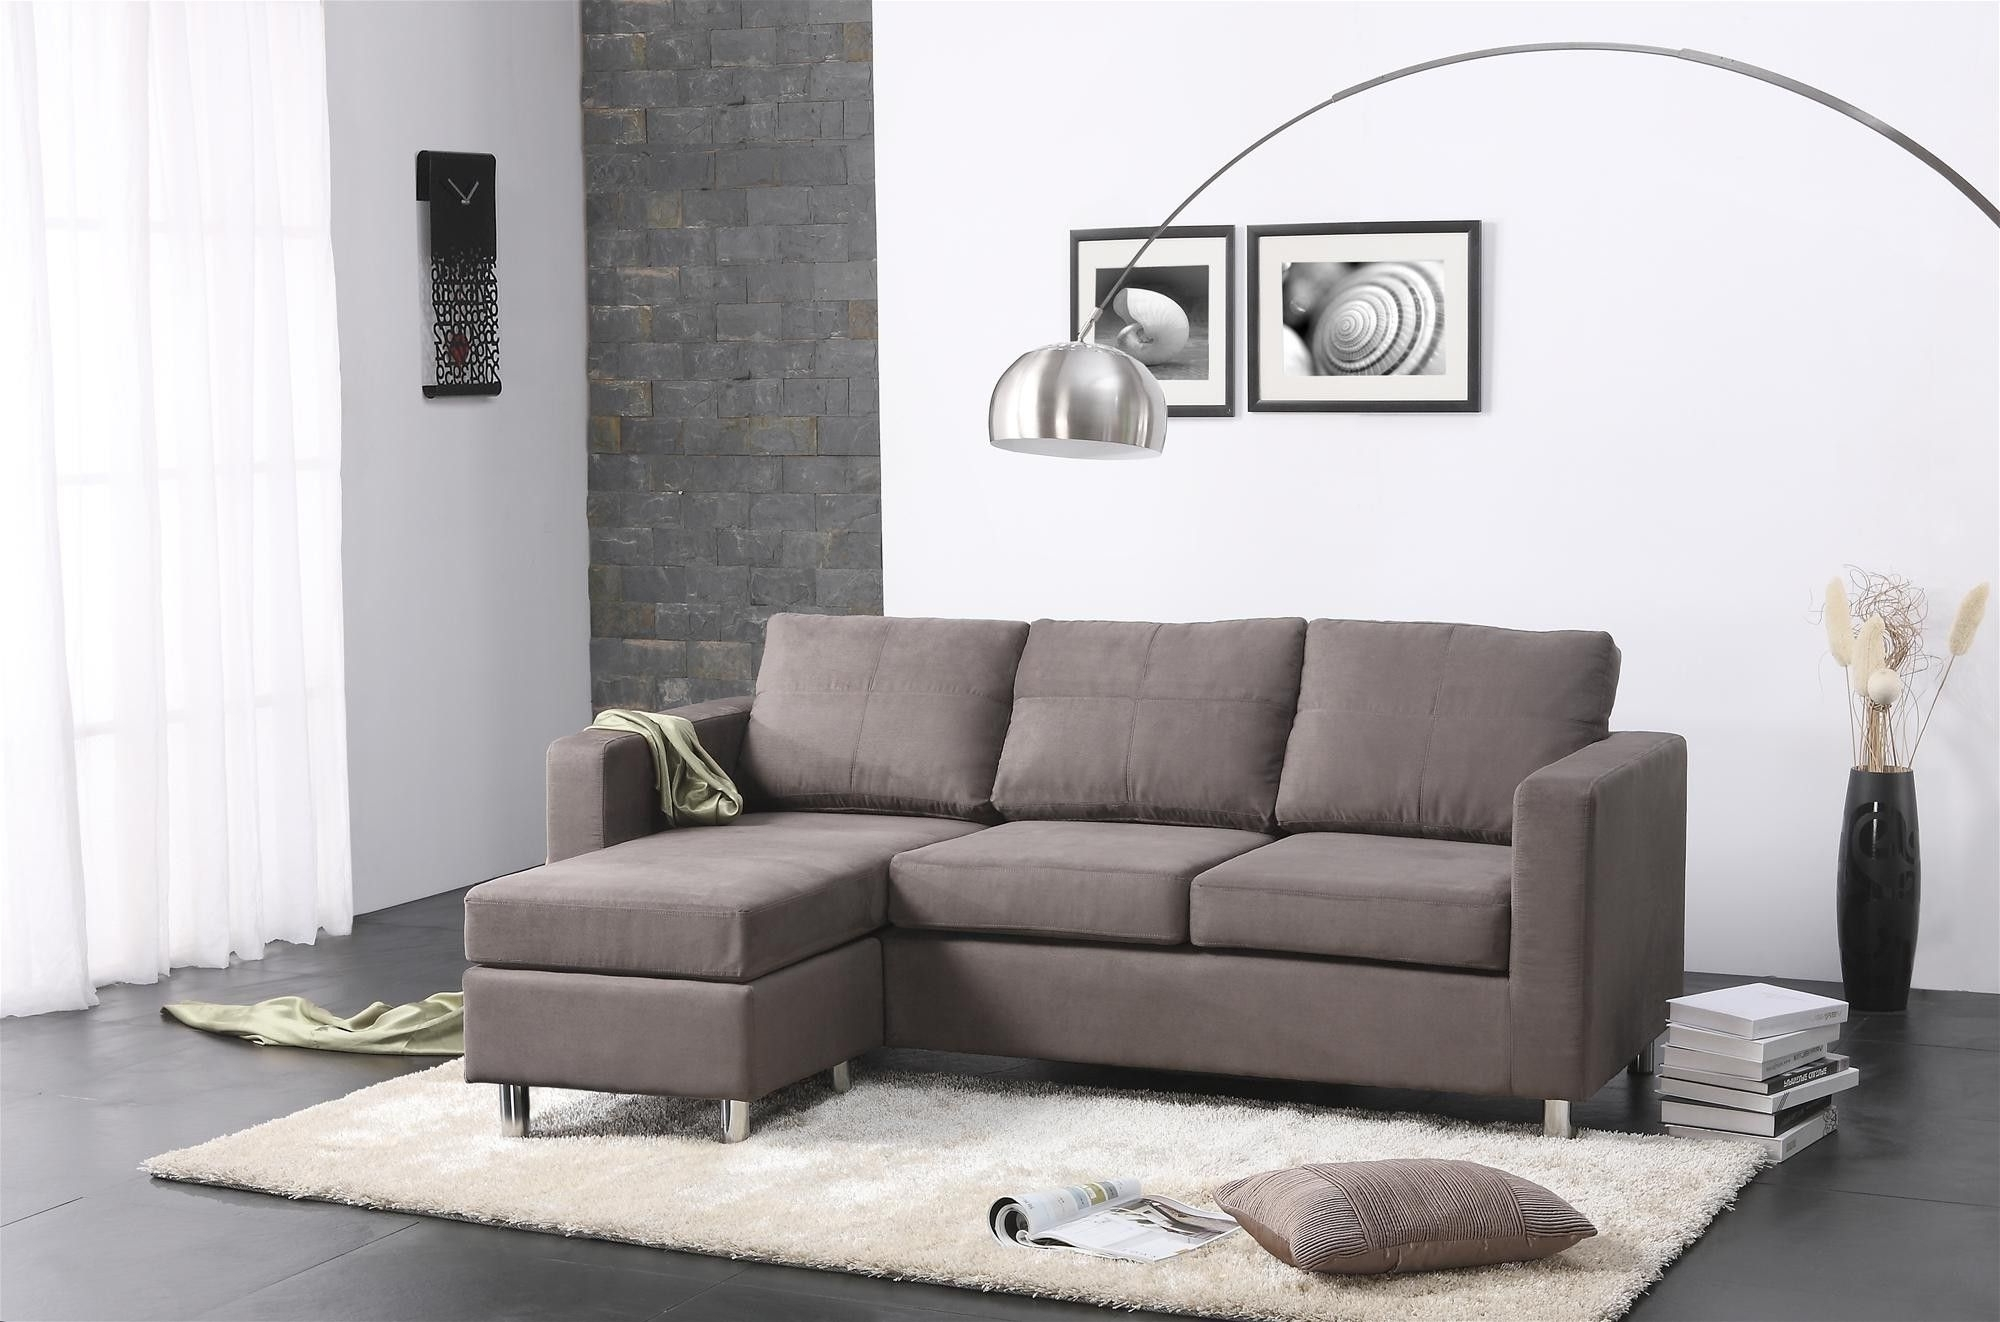 Modern Sectional Sofas For Small Spaces With Well Known Amazing Modern Small Spaces Living Room Decors With Grey Sectional (View 7 of 15)